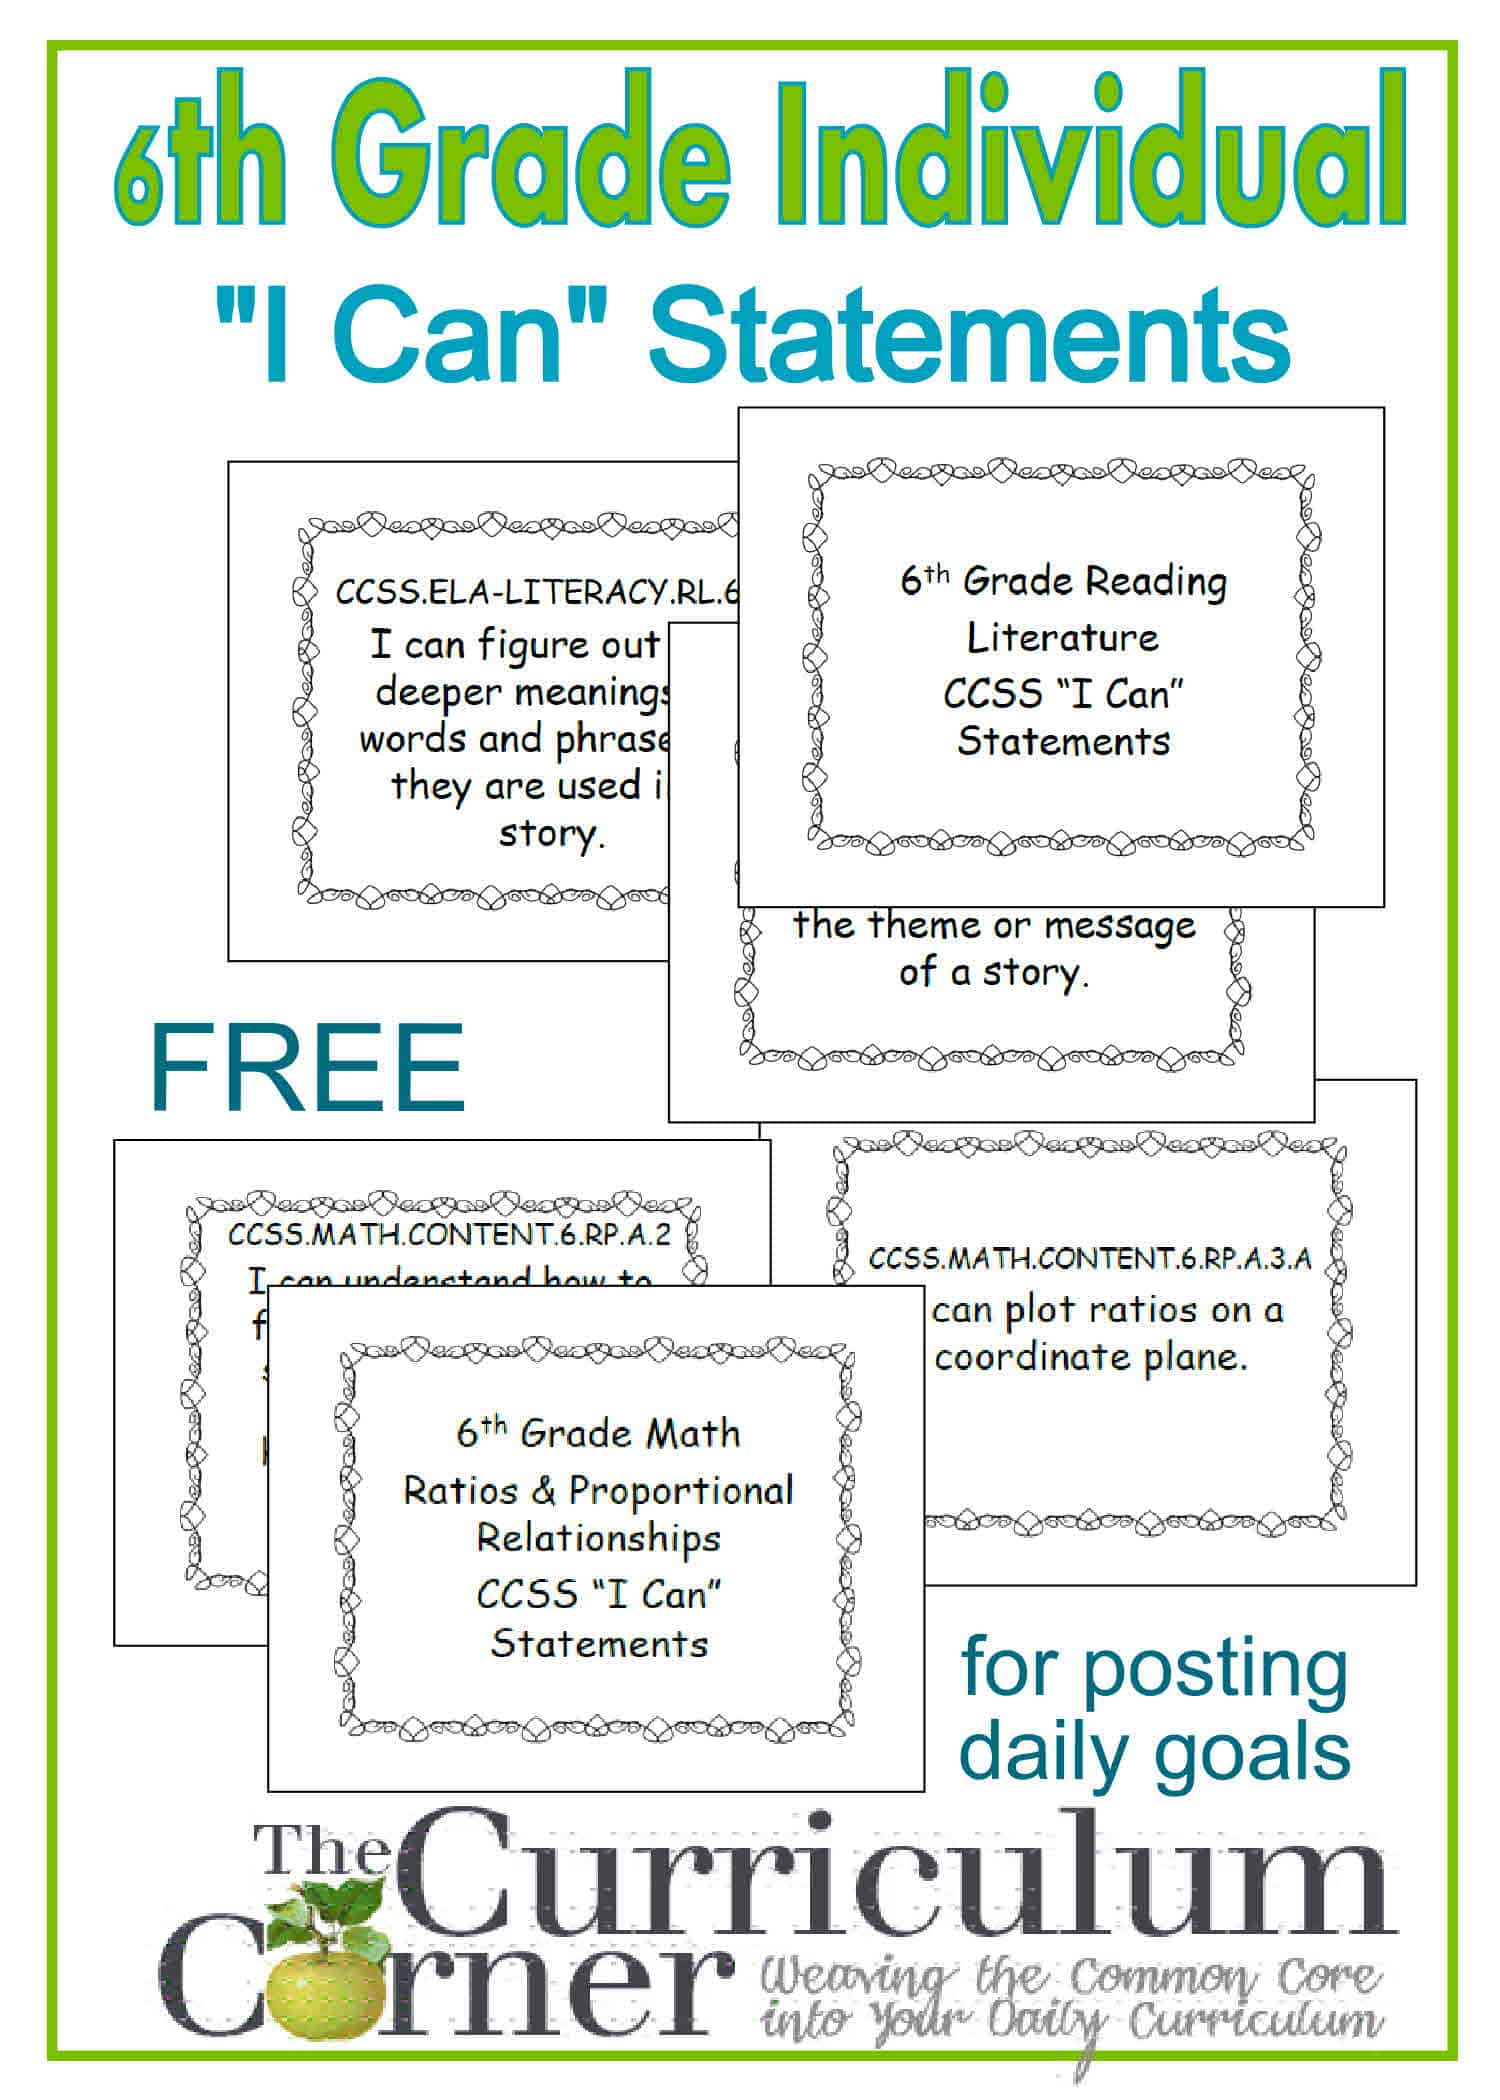 thesis statement lessons for 6th grade Displaying 8 worksheets for thesis statement worksheets are thesis statements web work by nancy armstrong, thesis statement work, thesis statement work, thesis.